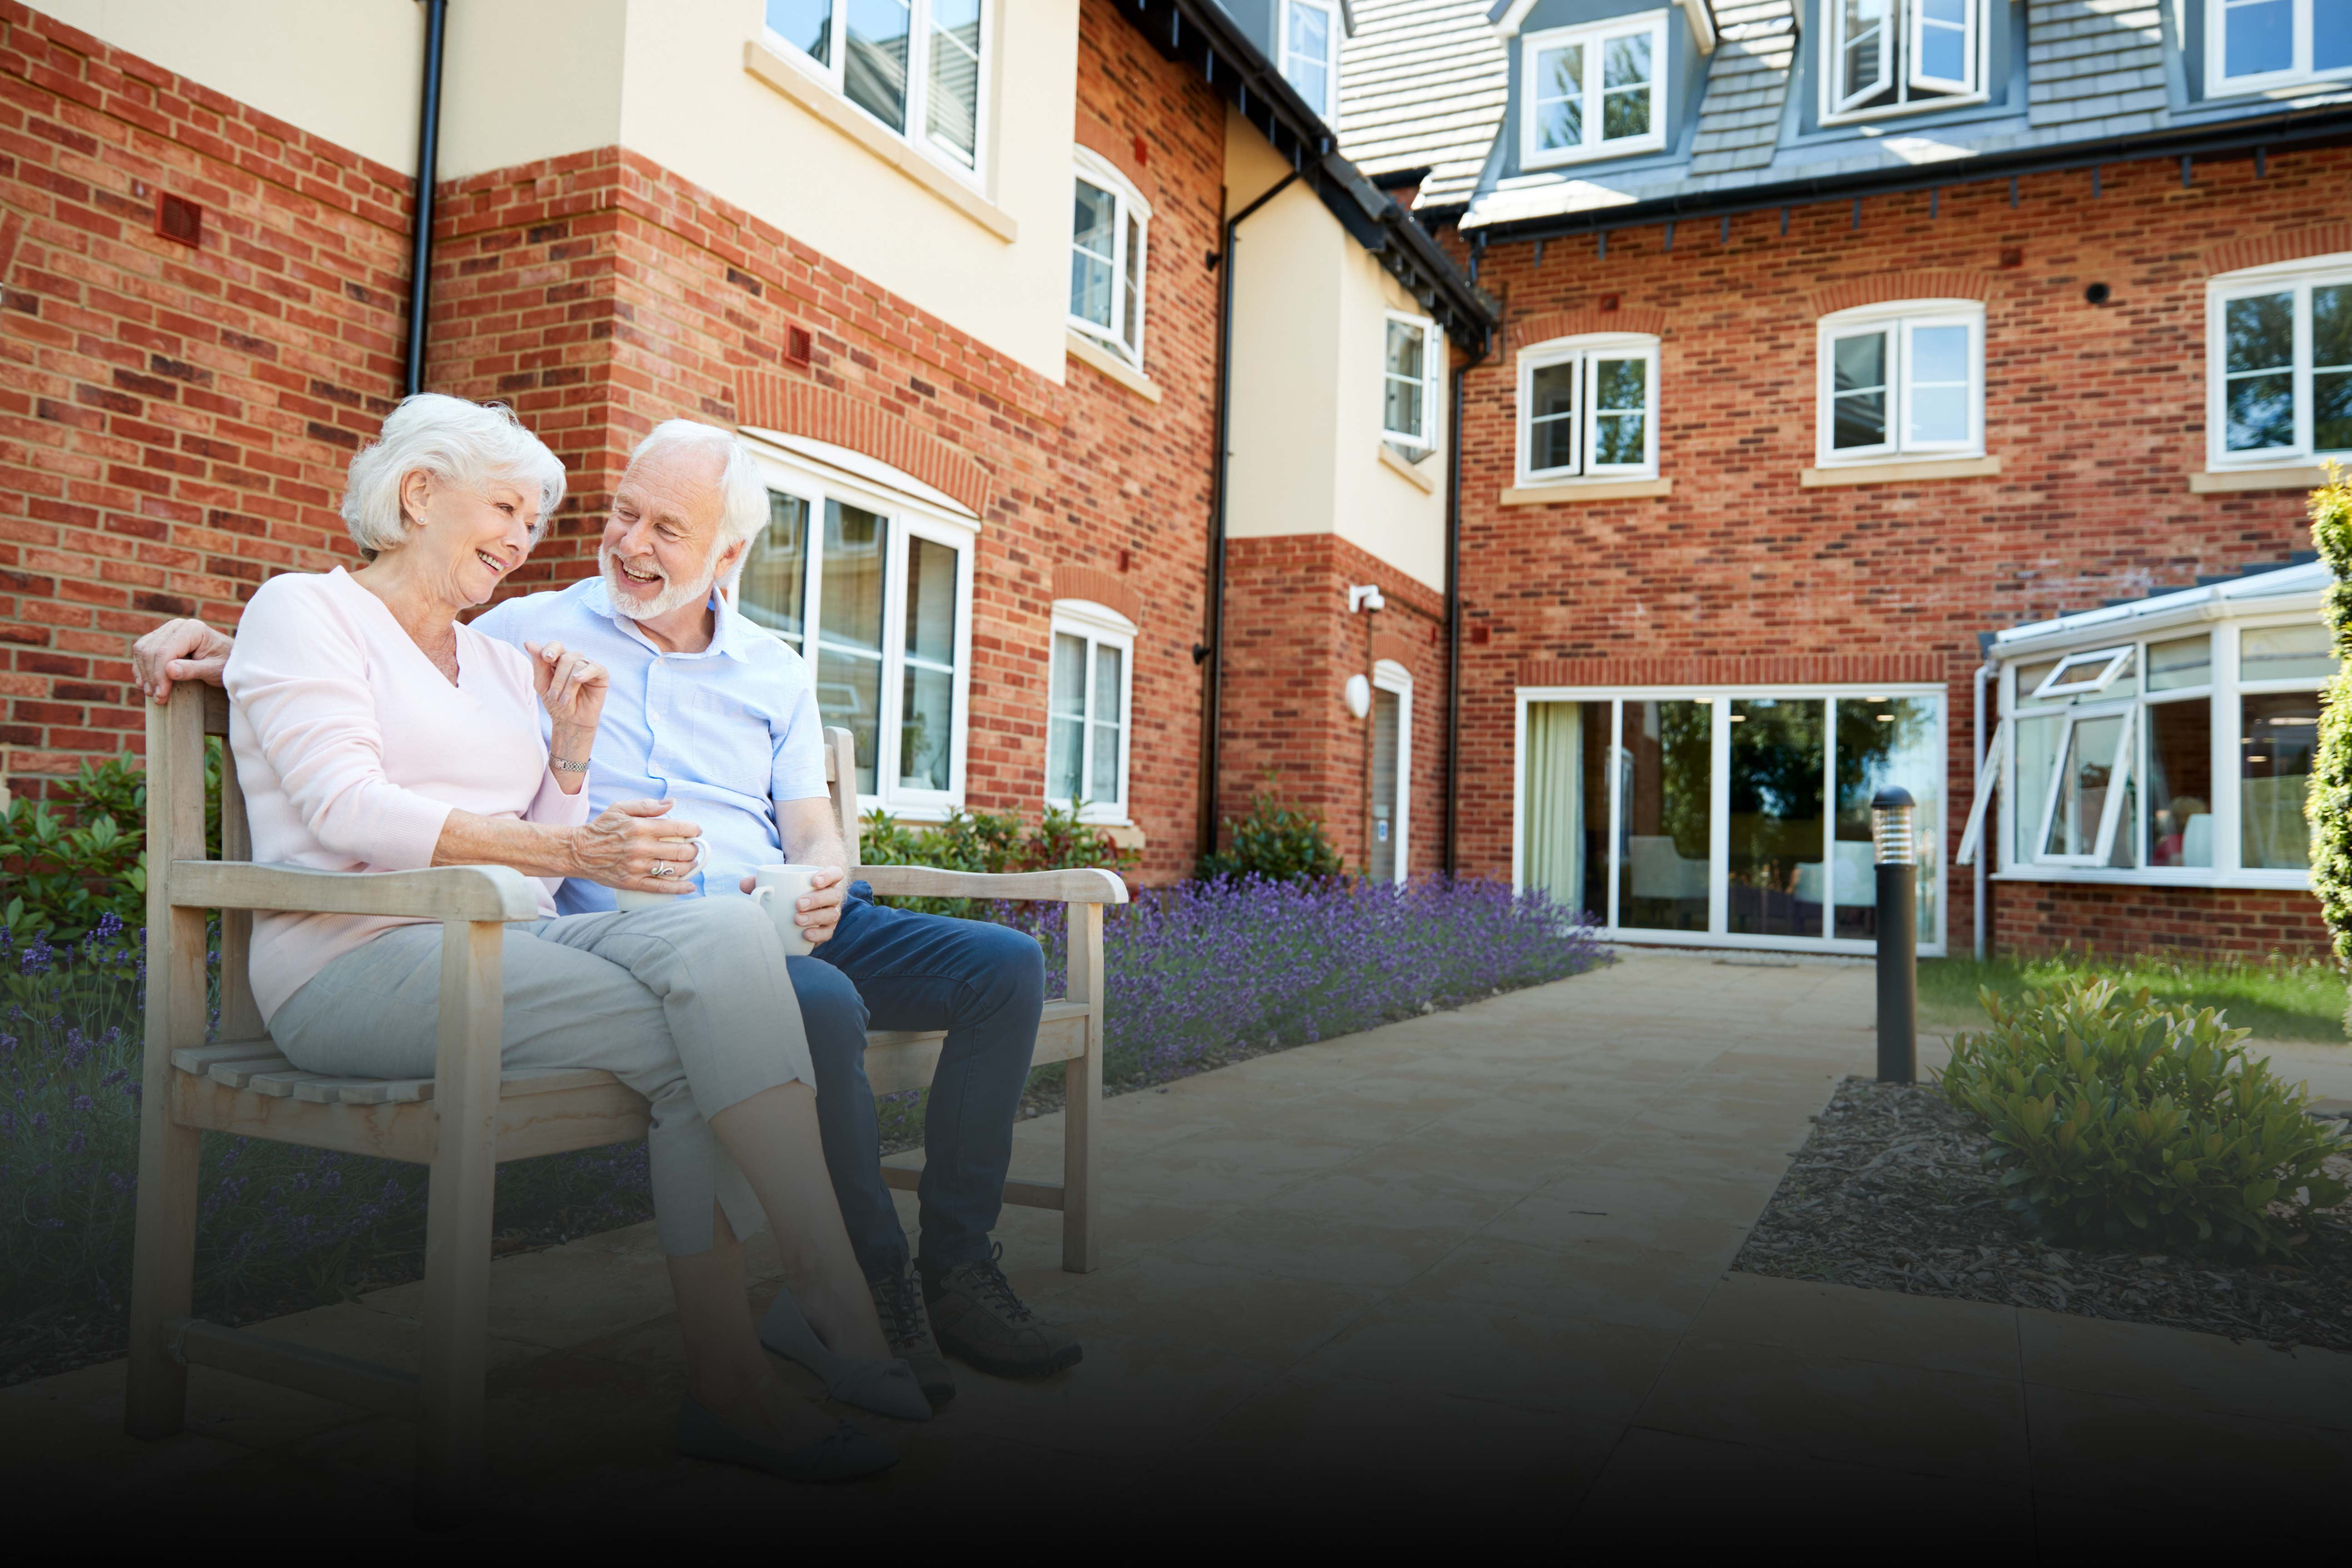 Assisted Living Facilities - How senior citizens can enjoy living in senior communities.